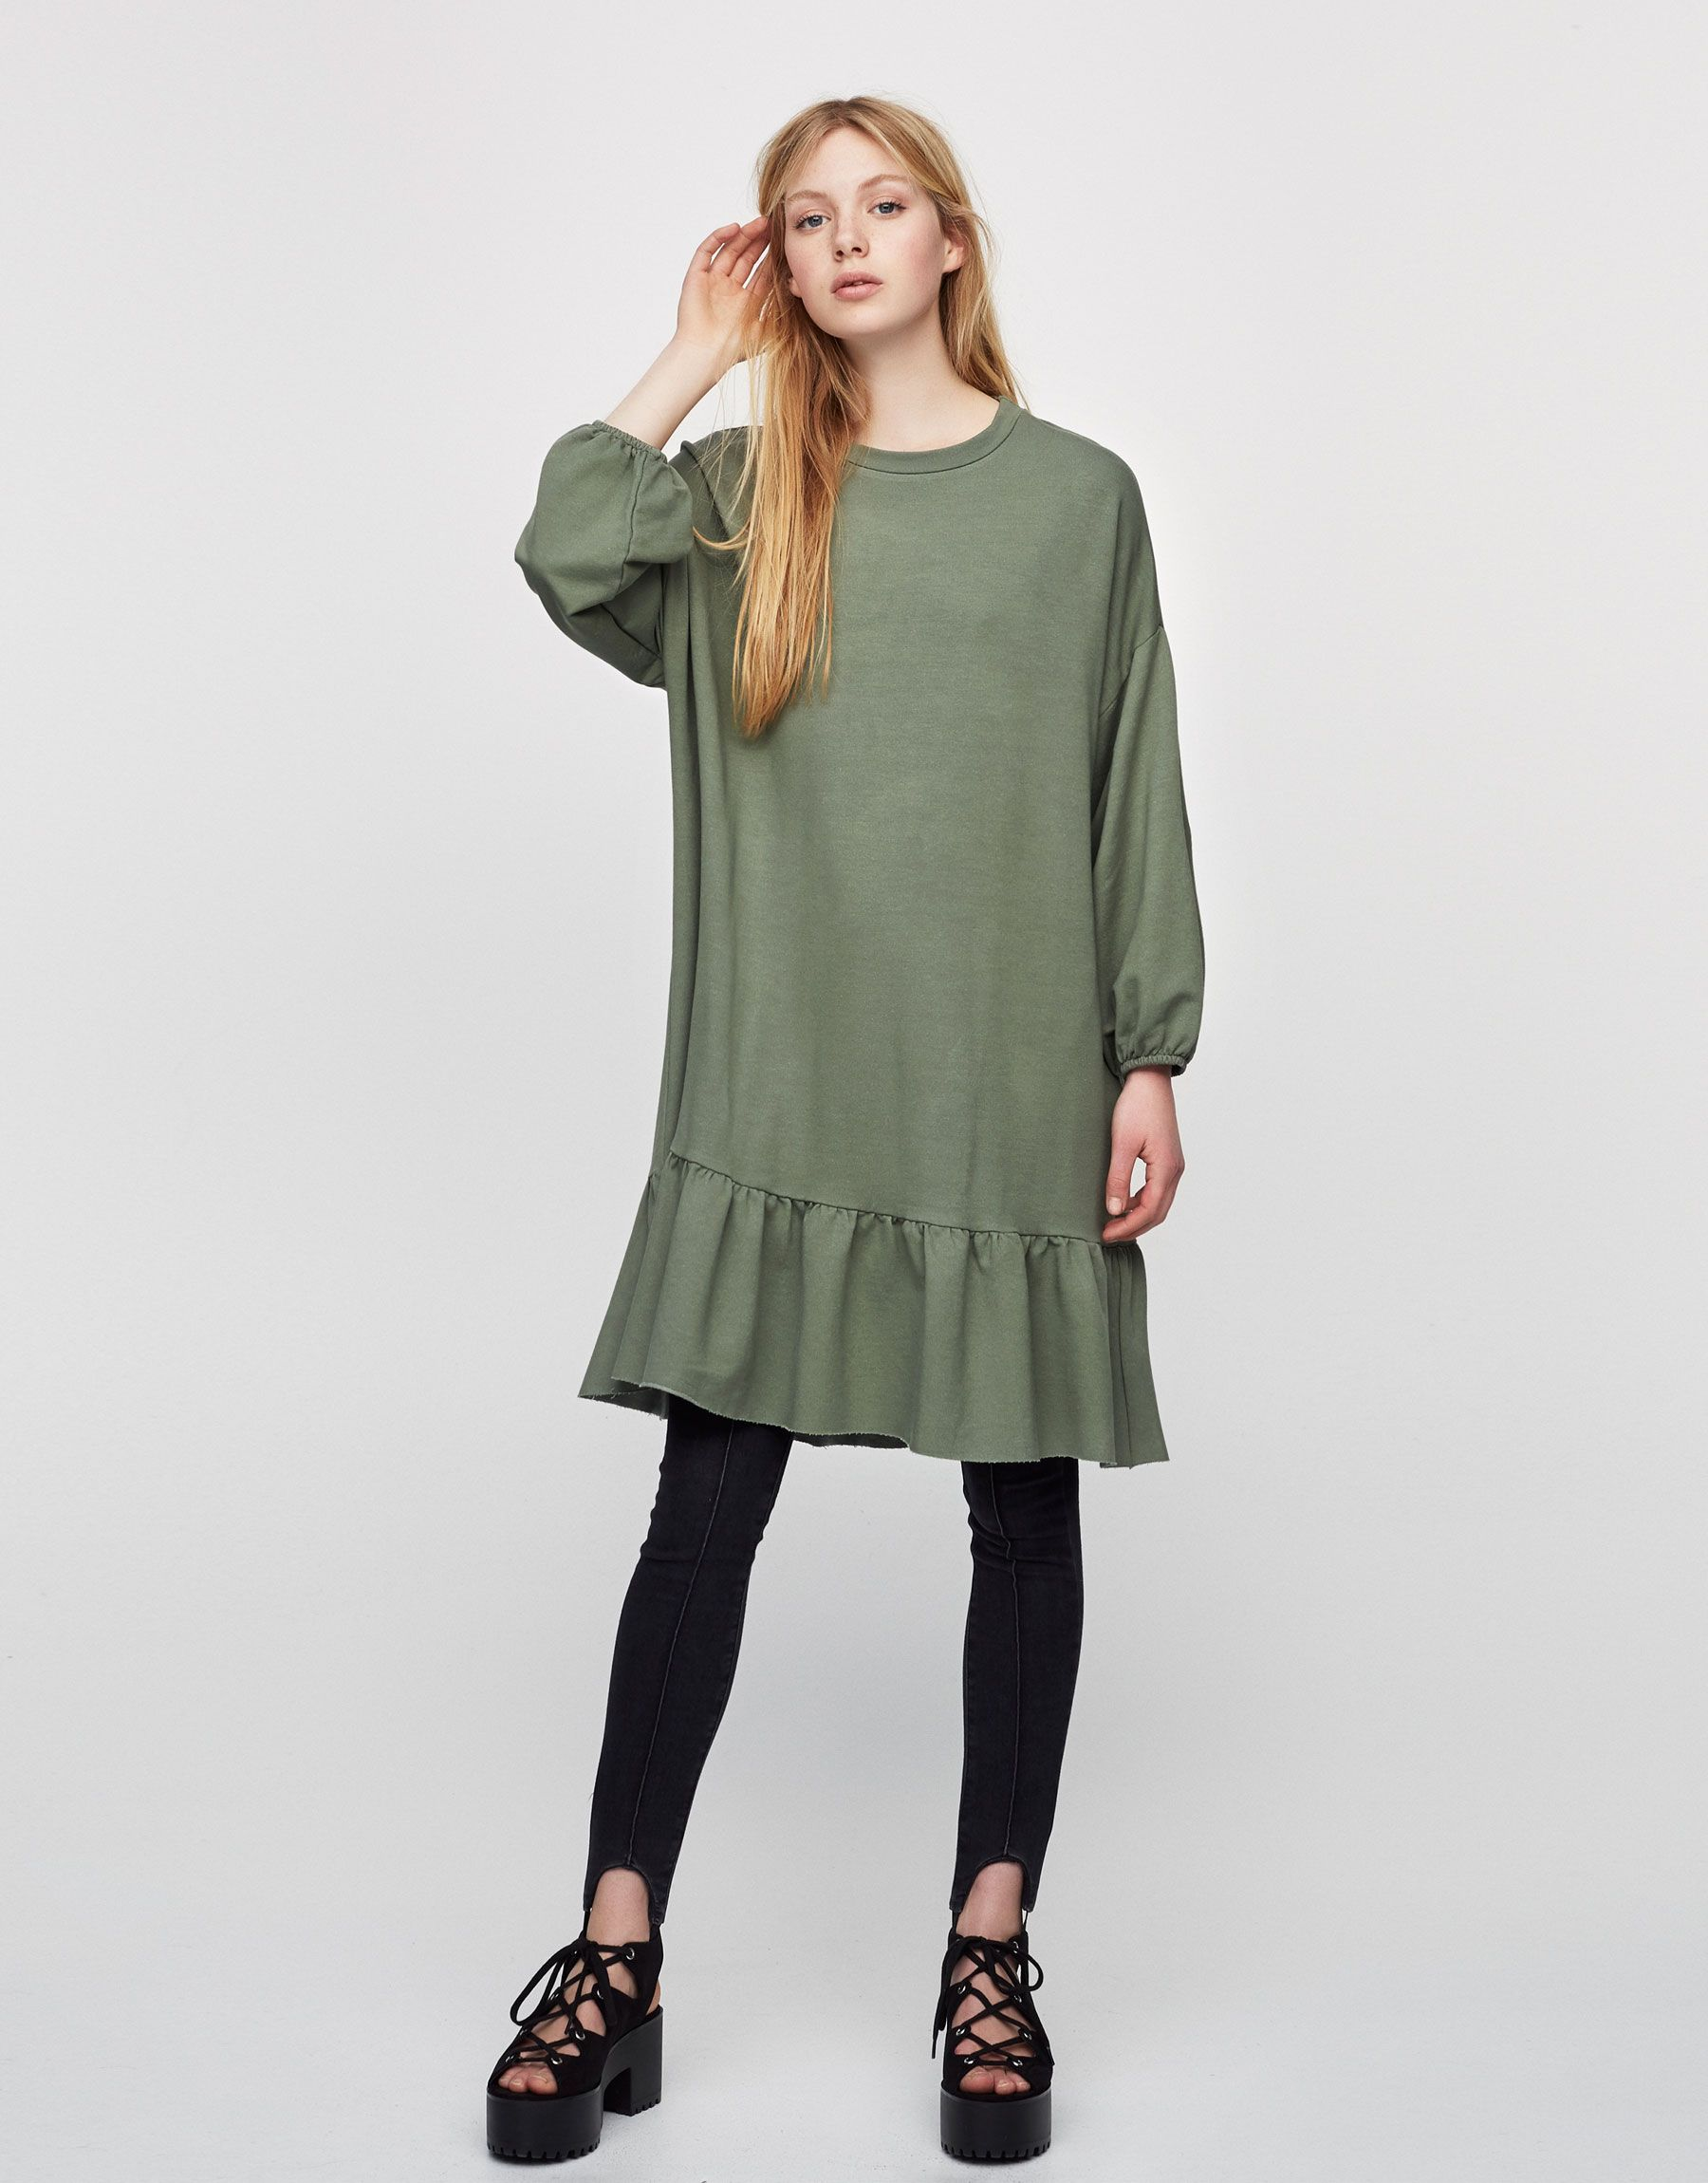 Dress with frilled hem - Dresses - Clothing - Woman - PULL&BEAR Mexico